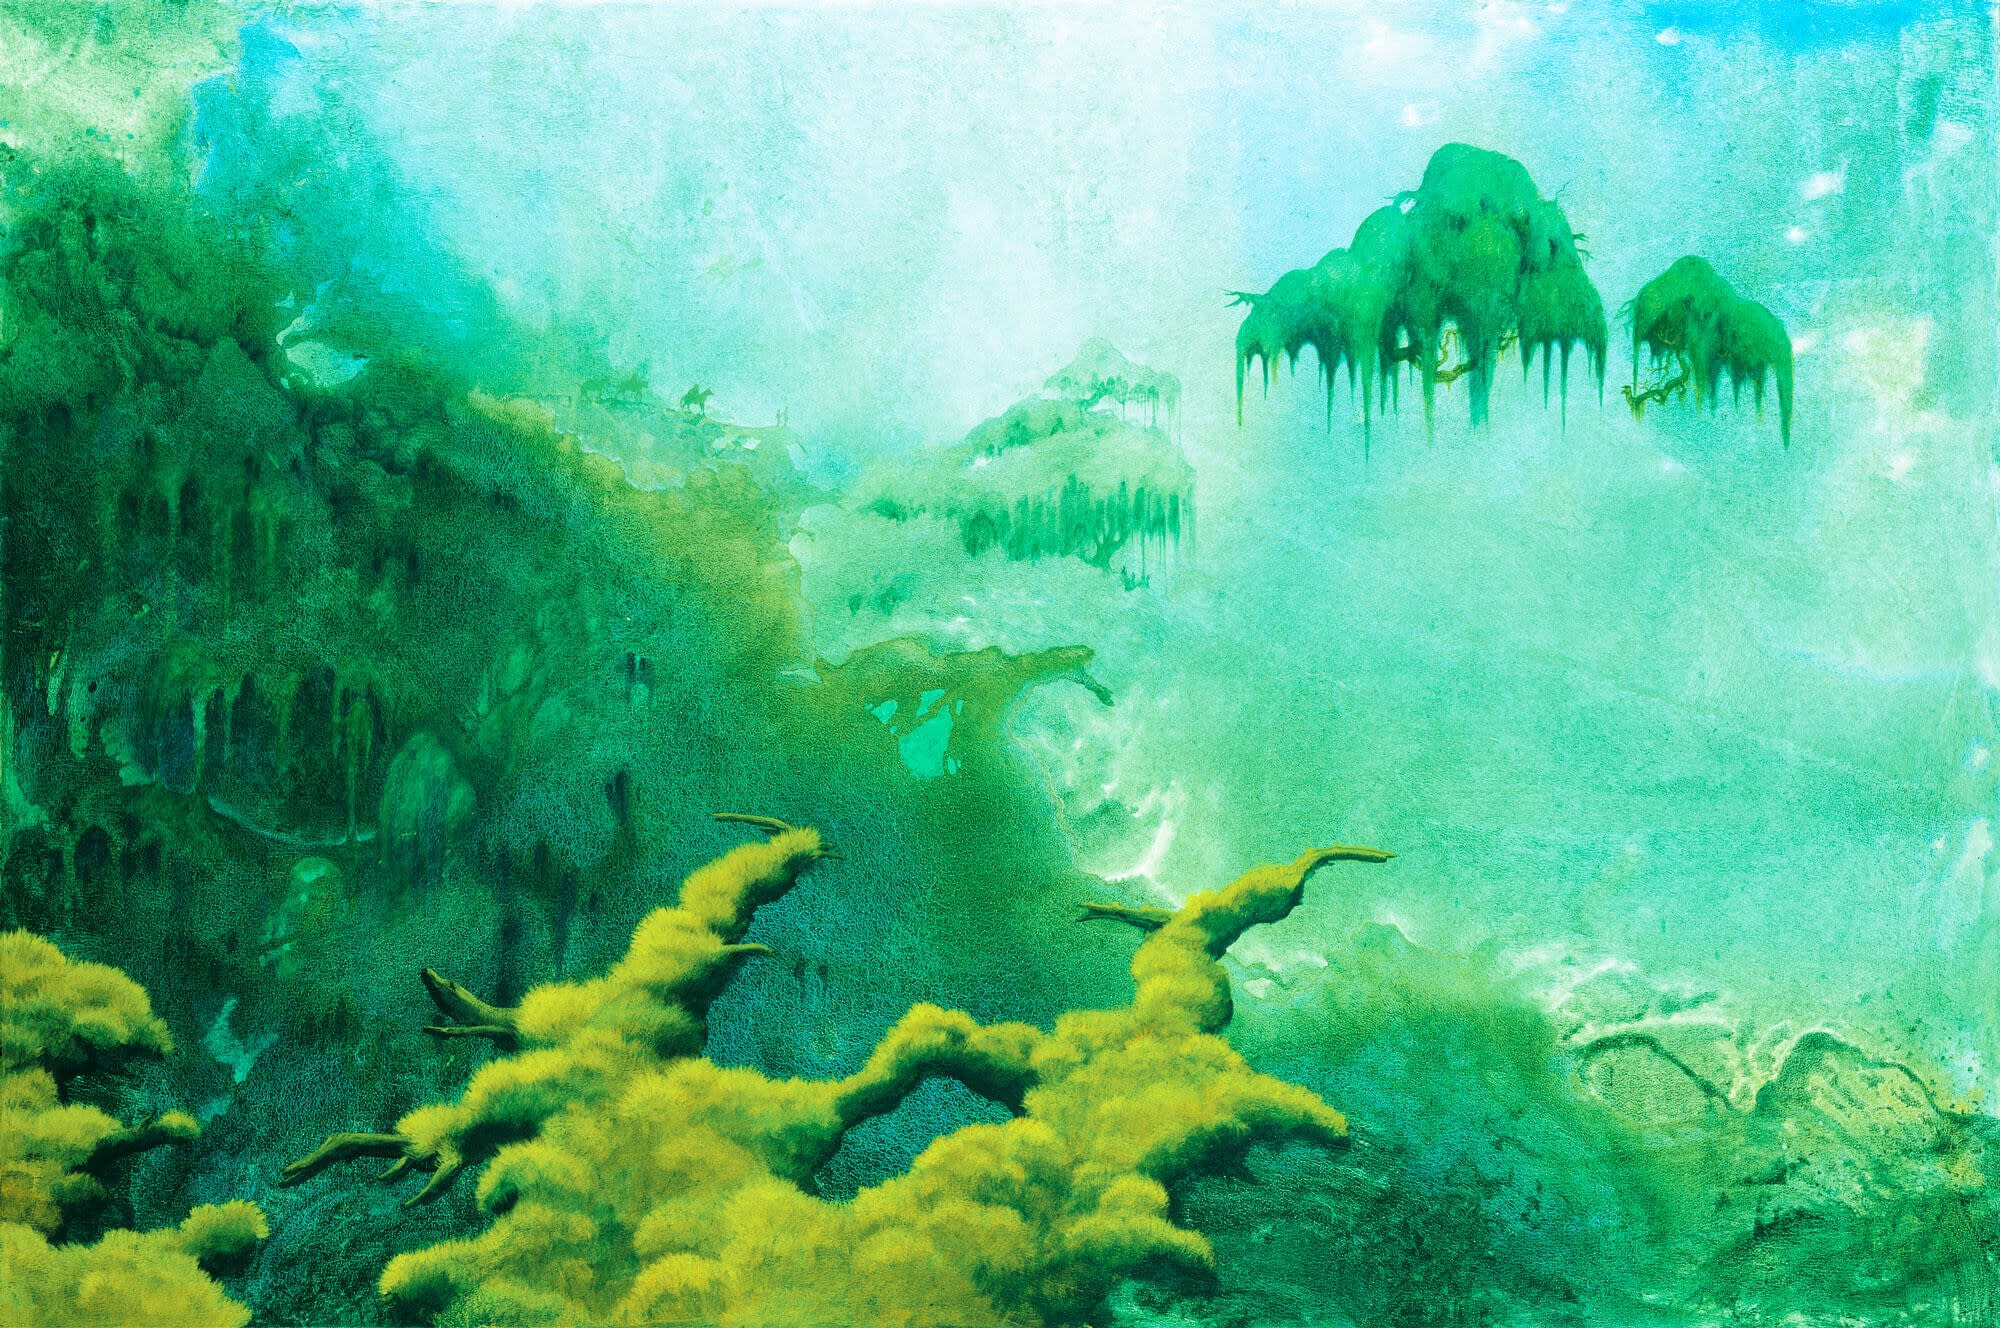 Welcome to The Gallery: Featuring the iconic artwork of Roger Dean.